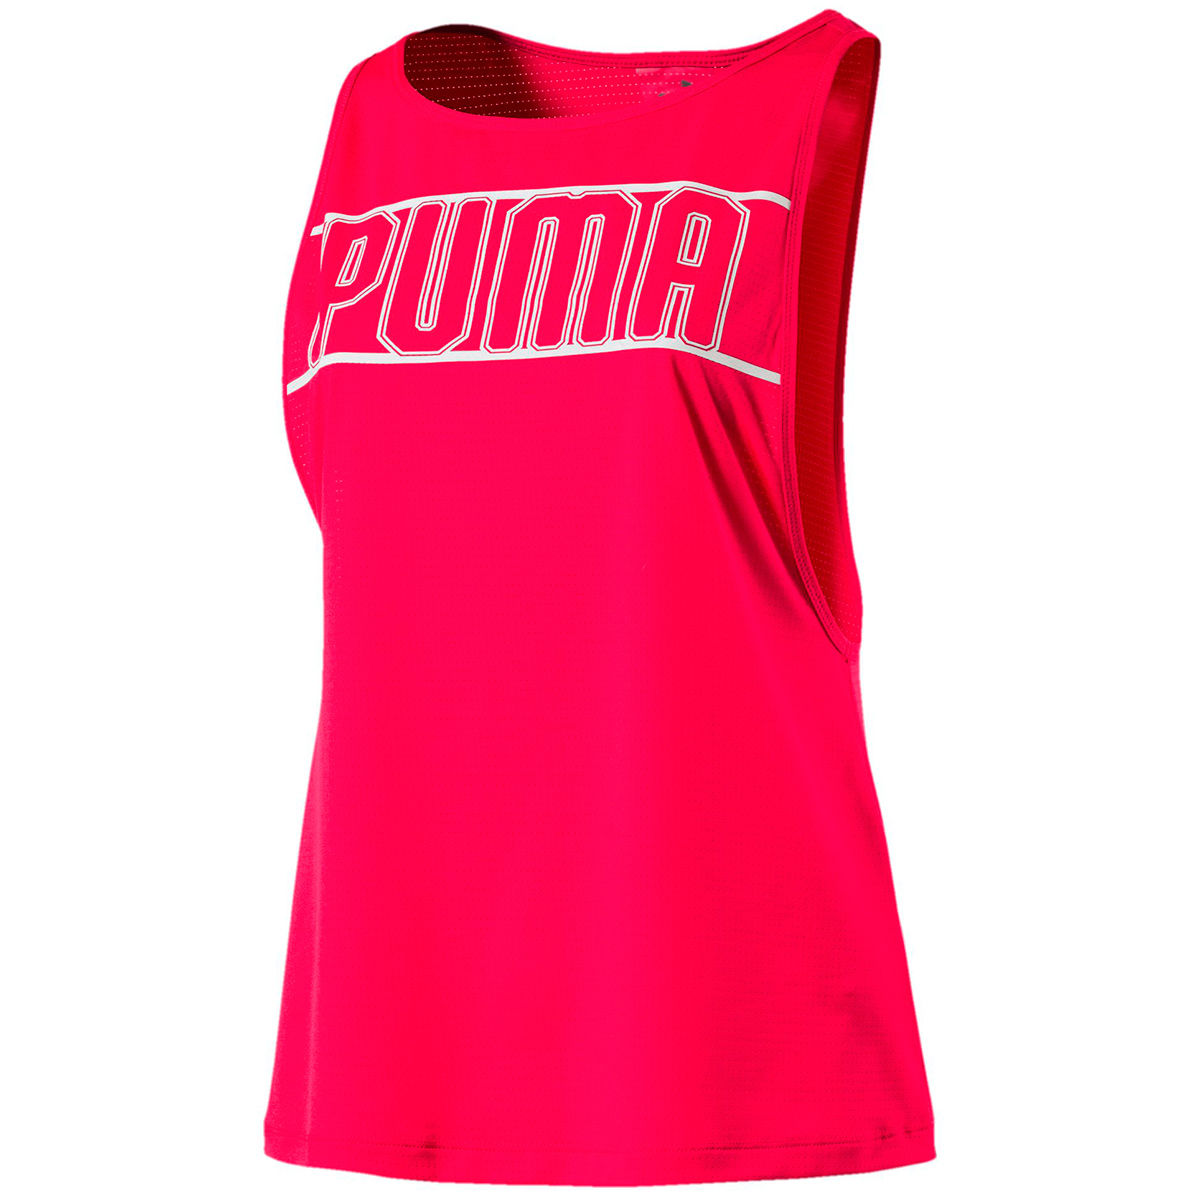 Puma Women's Spark Tank Top - Red, M